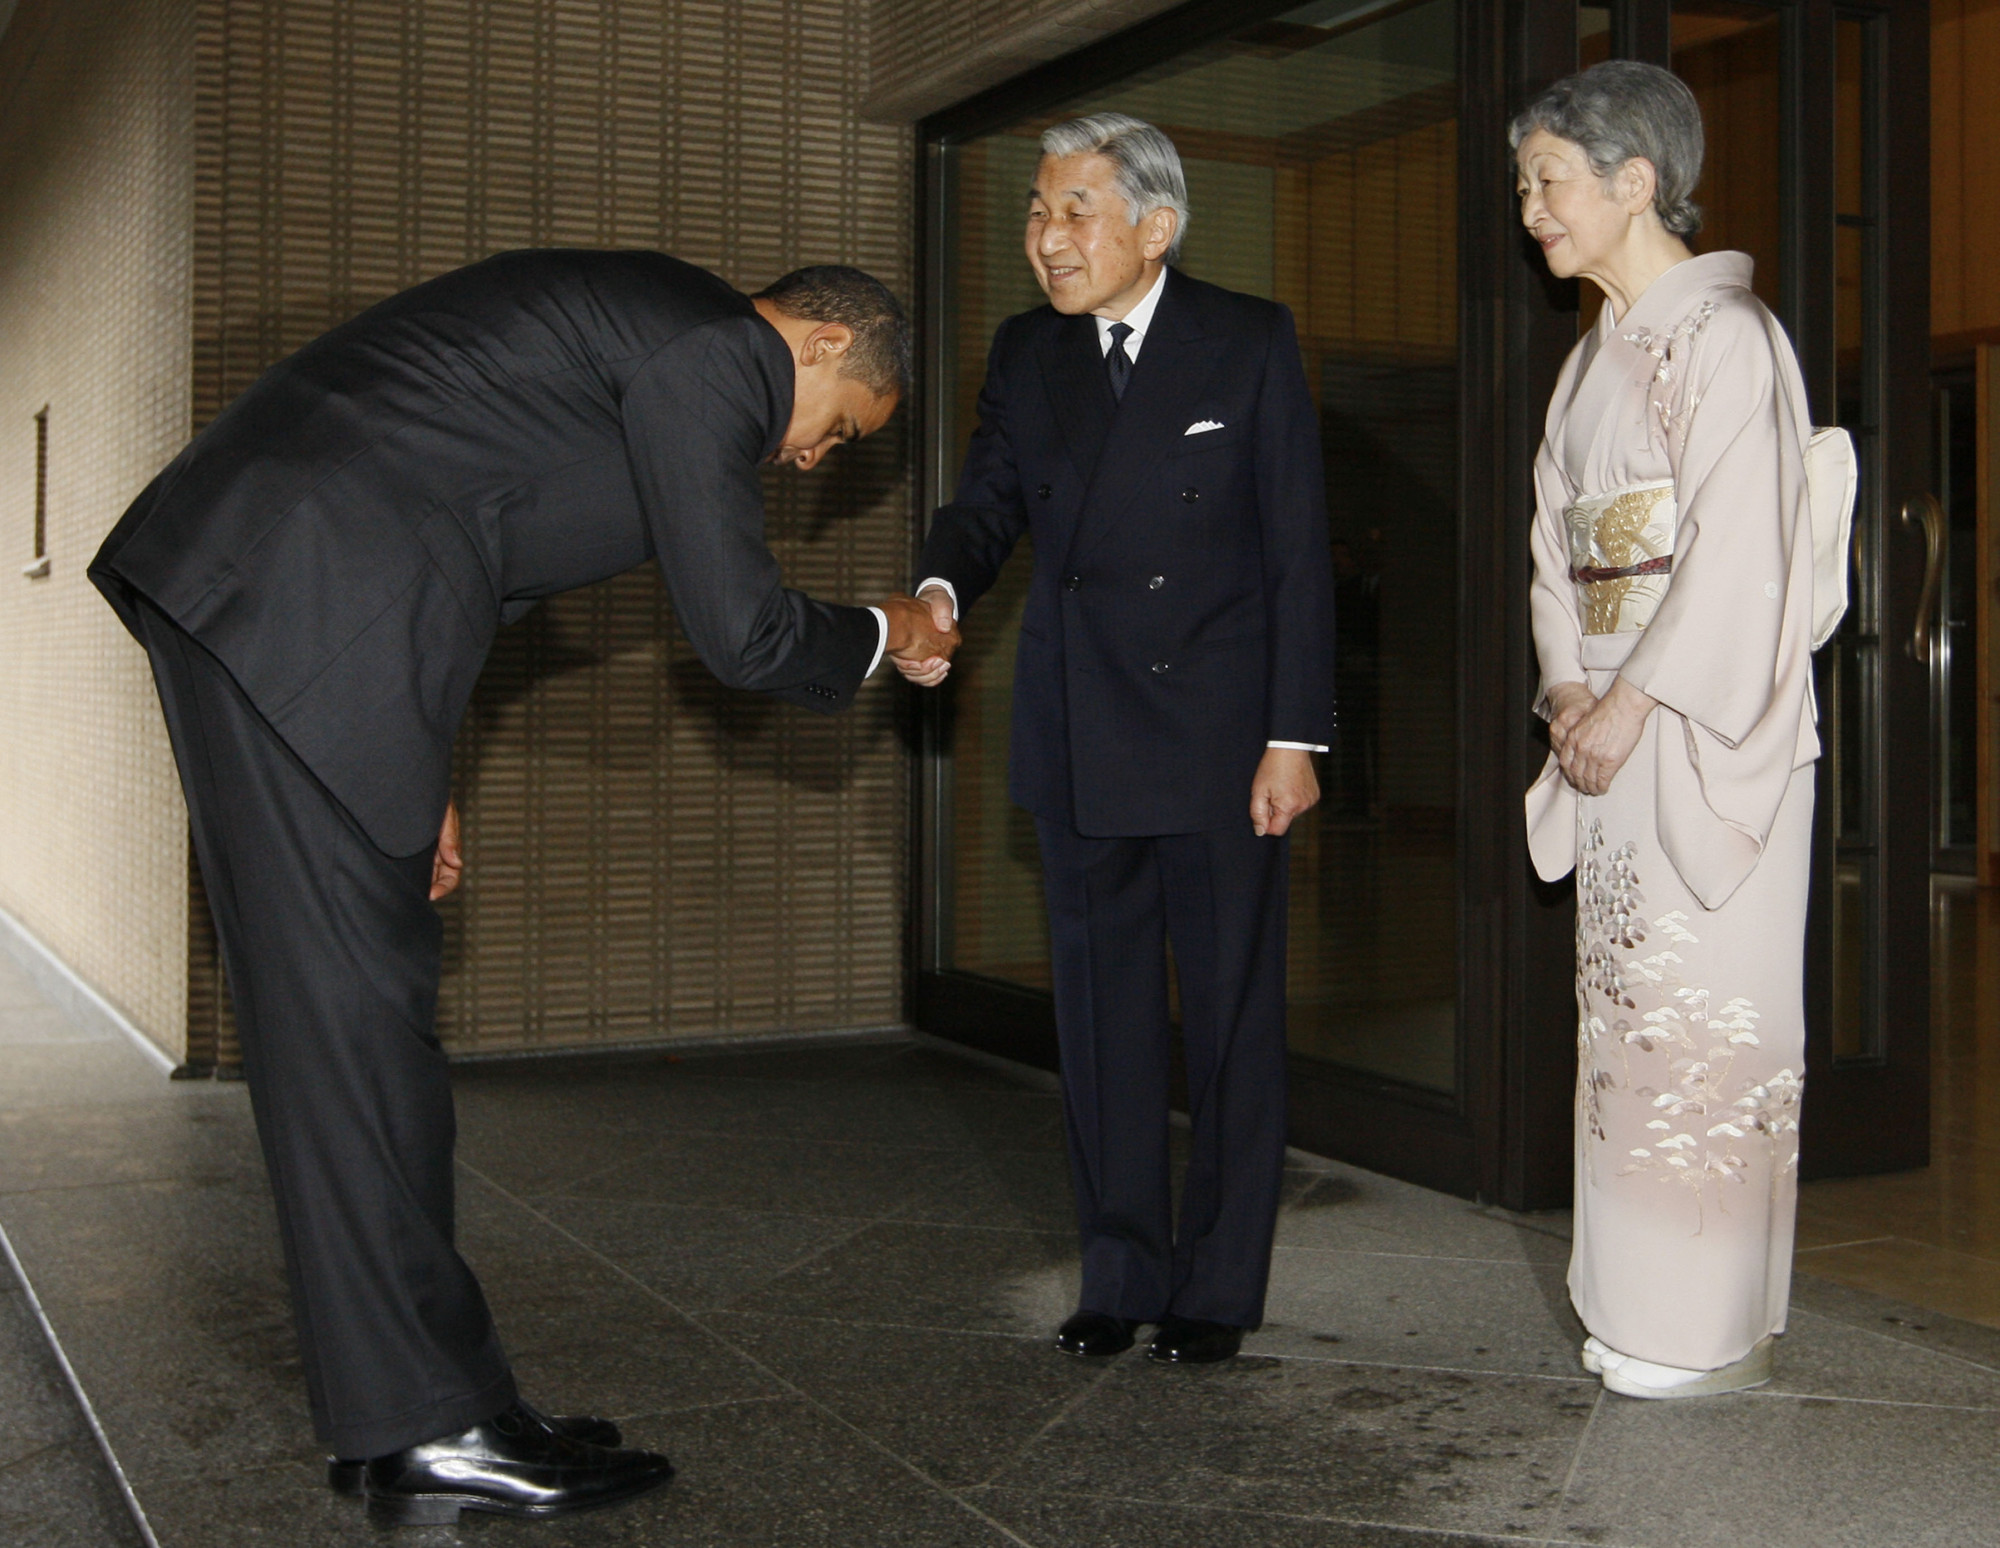 U.S. President Barack Obama bows deeply while shaking hands with Emperor Akihito at the Imperial Palace in Tokyo in November 2009. | AP / VIA KYODO